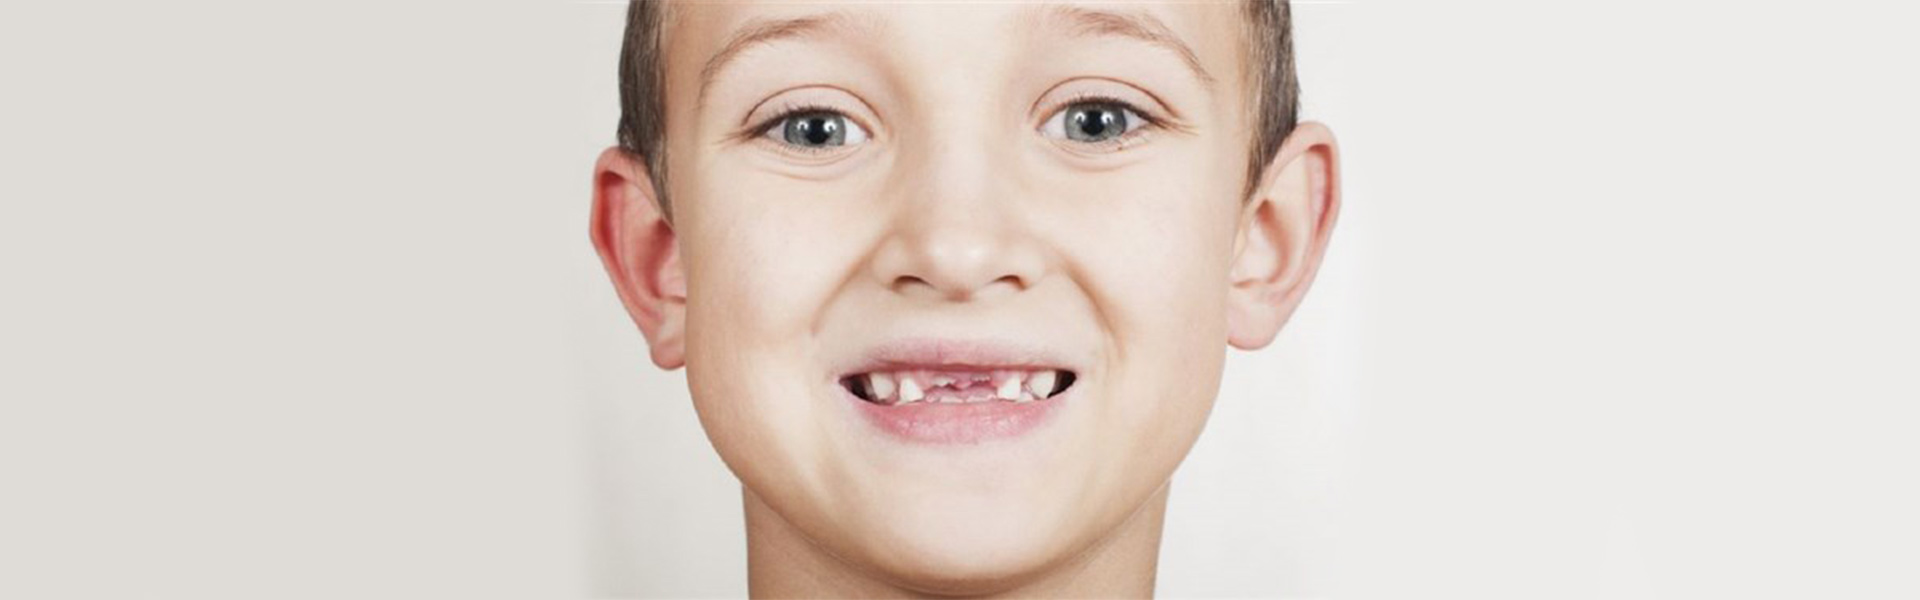 How Sugar Affects Child's Teeth and What You Can Do About It?